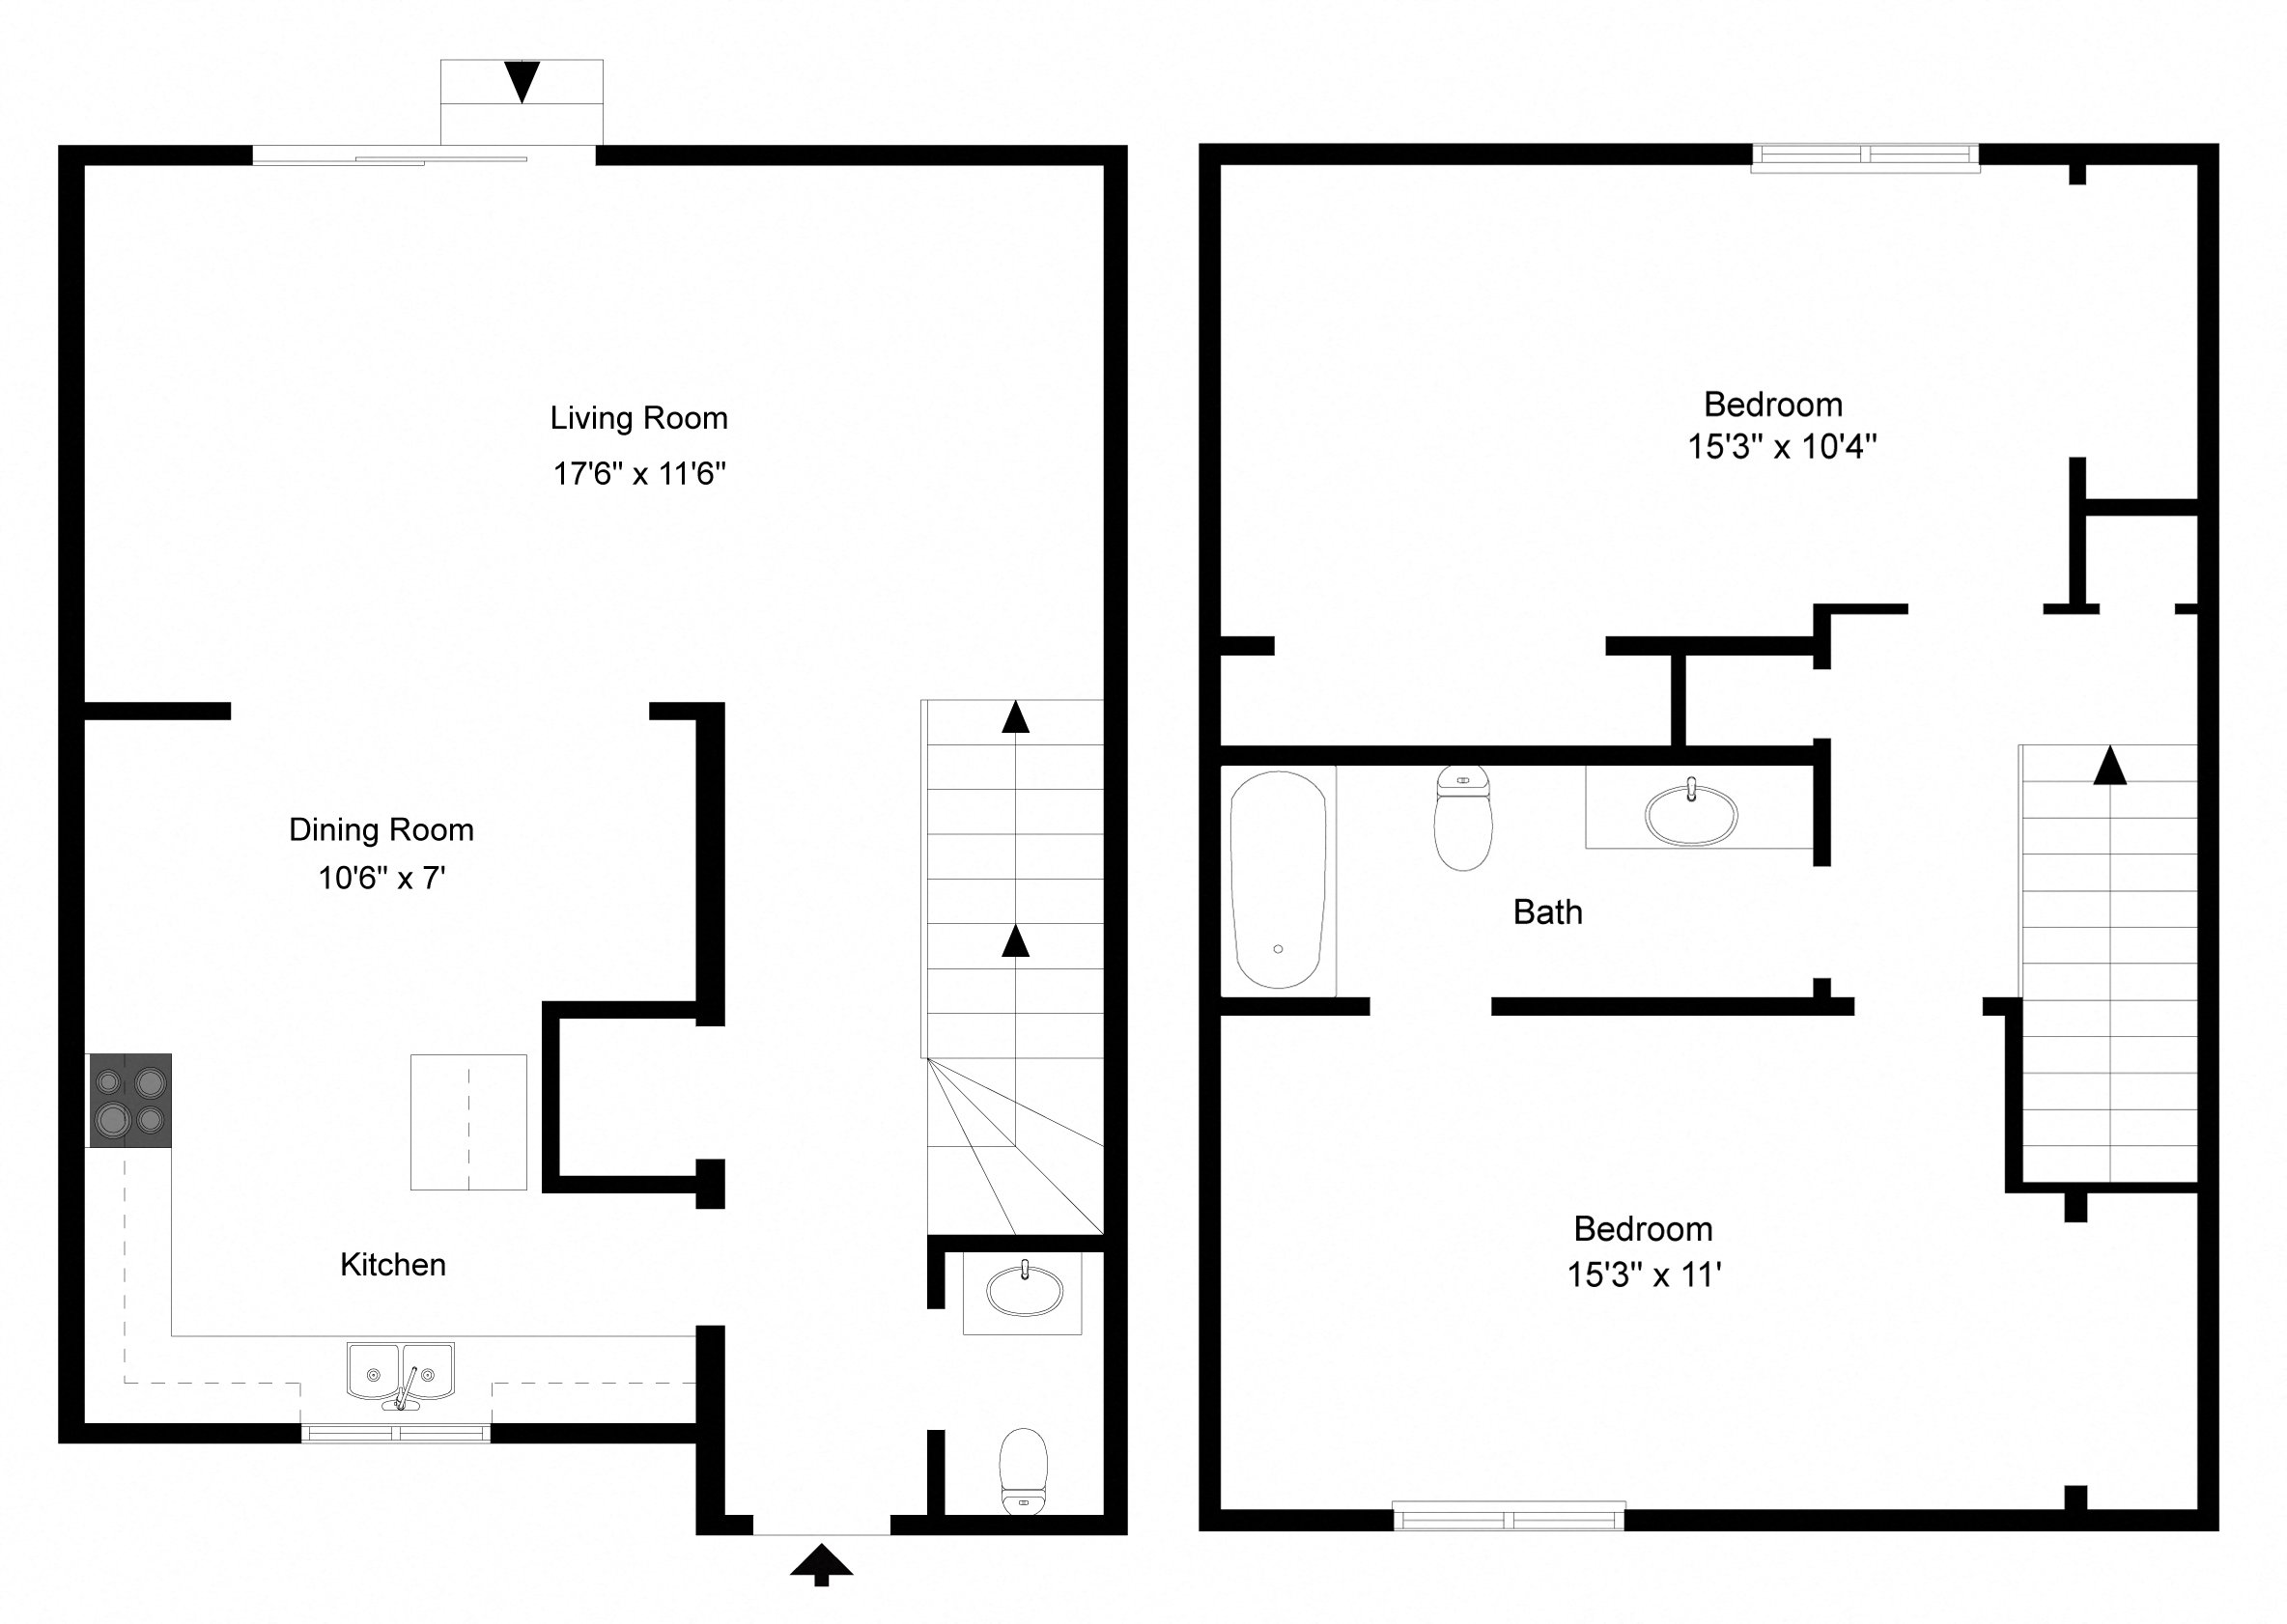 Two Bedroom   Phase I At Collett Woods Townhouses, Farmington,New York